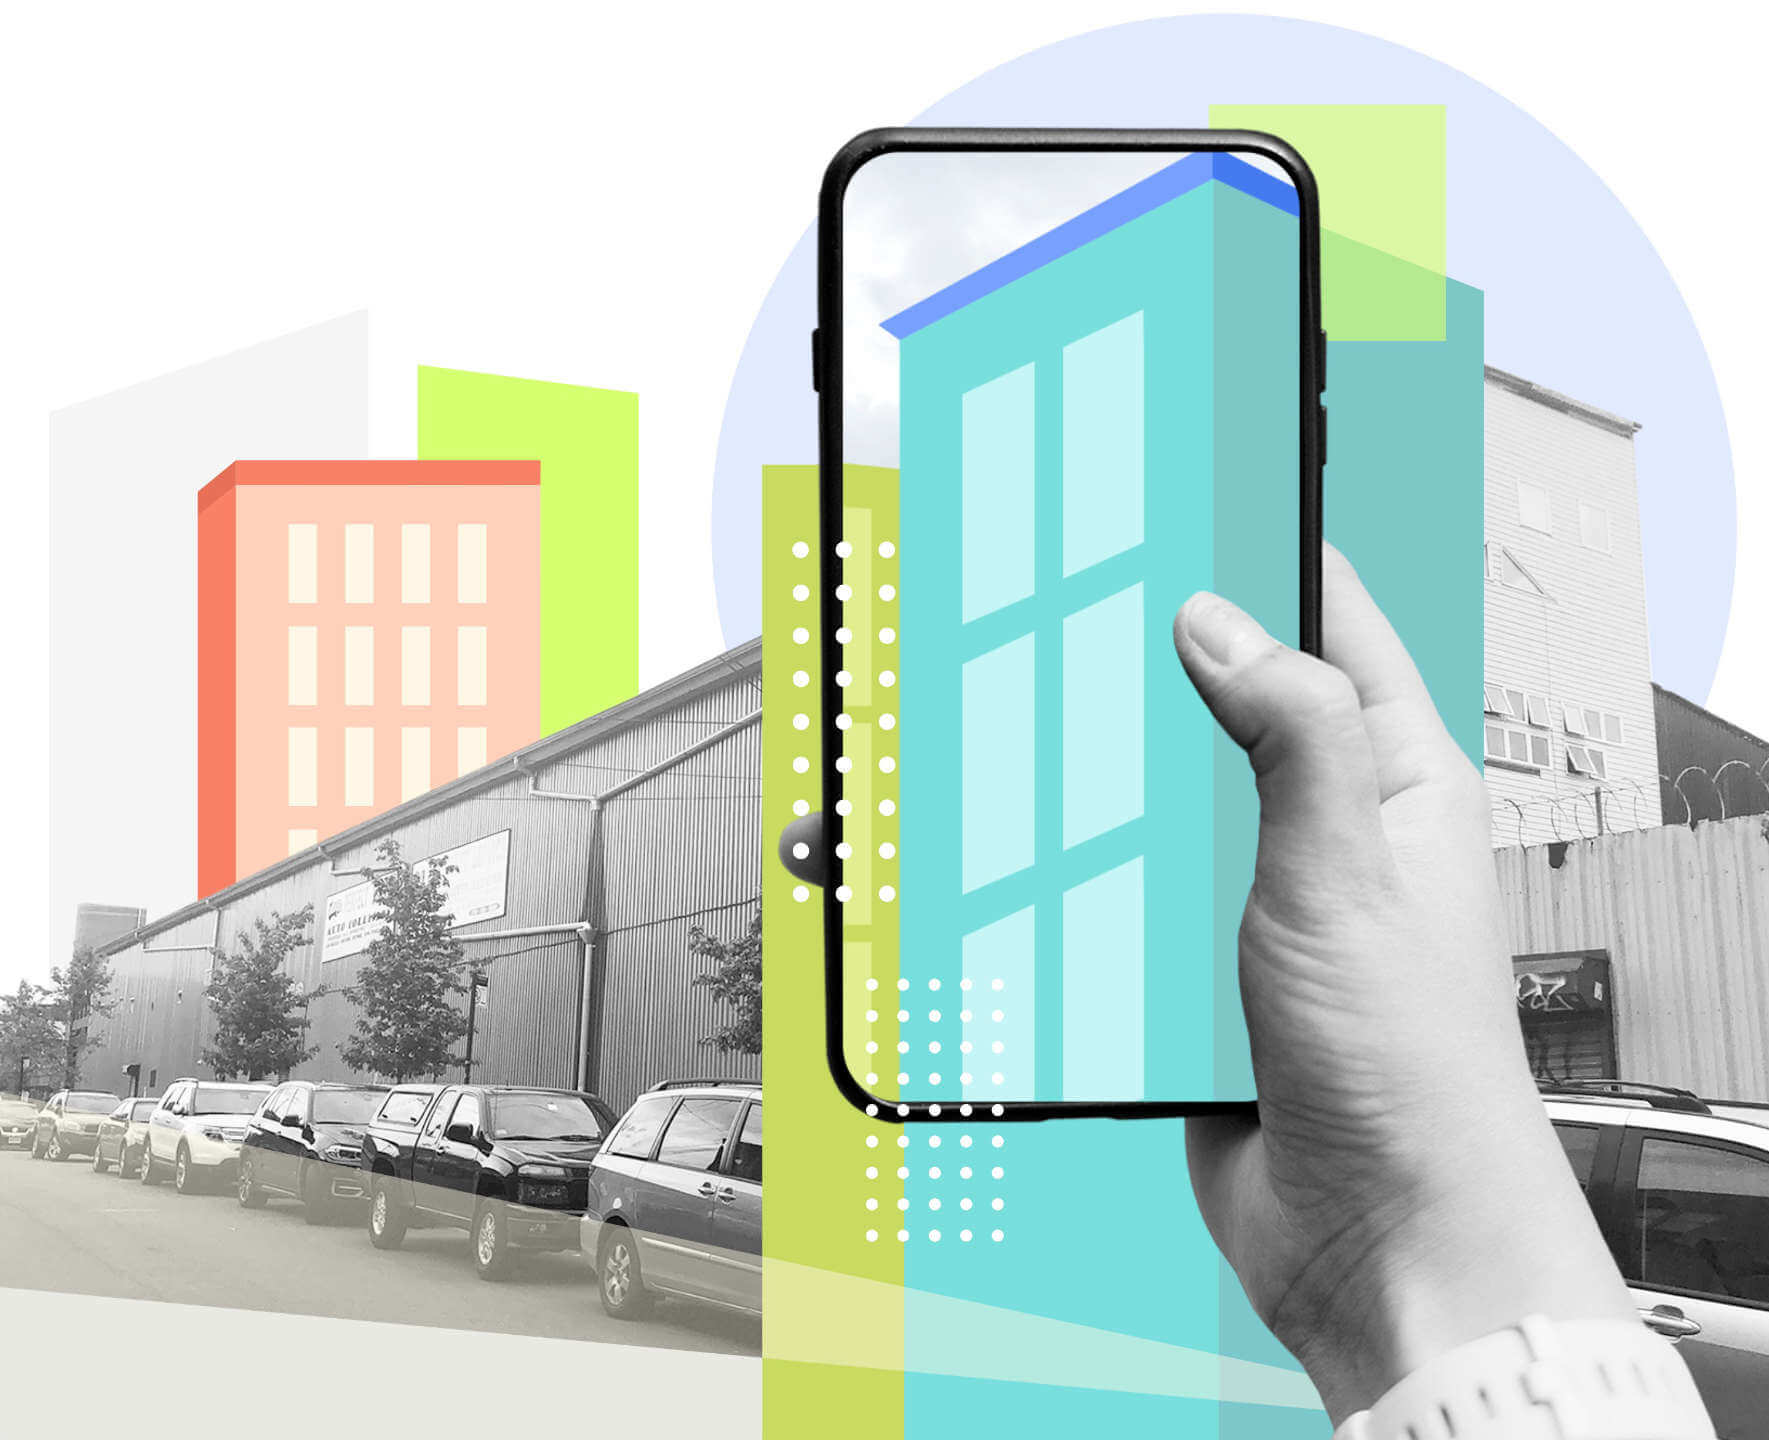 Phone pointing at buildings and showing future changes in augmented reality (AR).